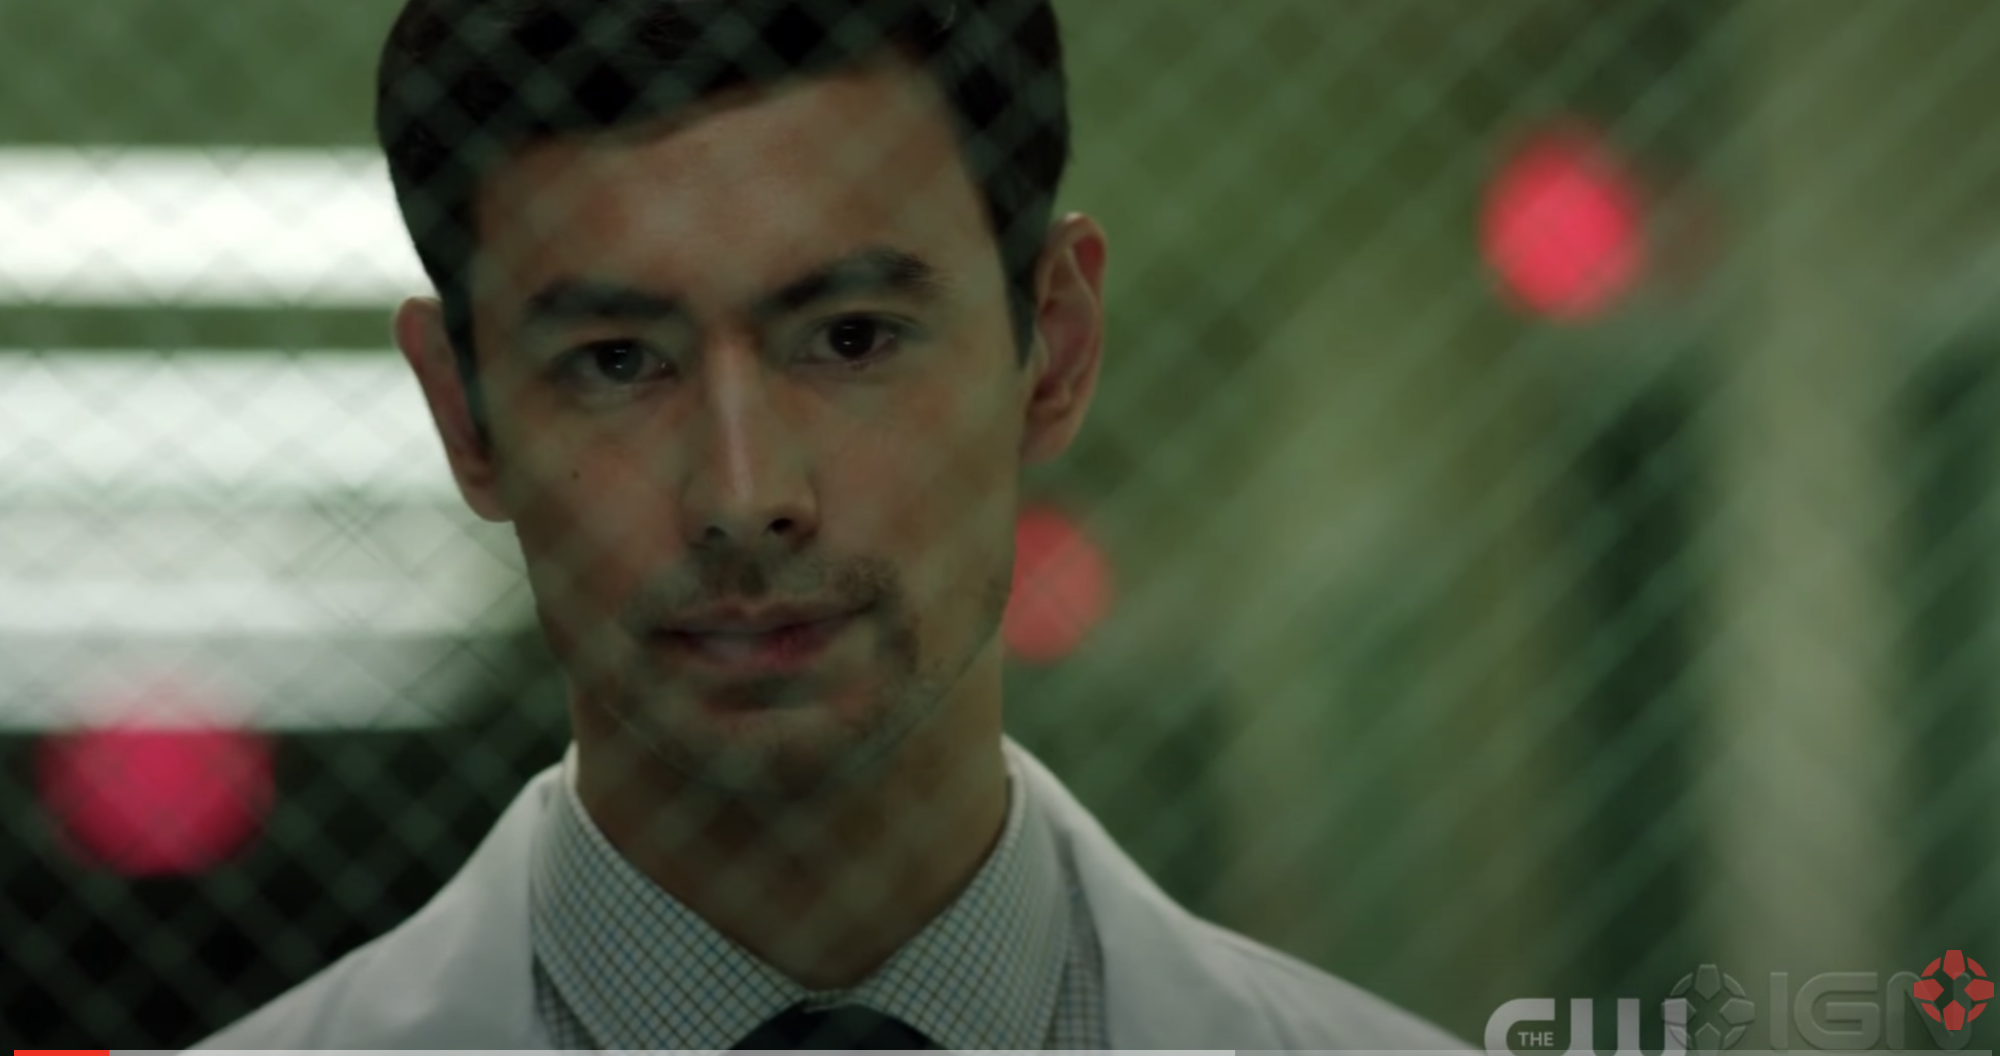 A shot of George Young through glass